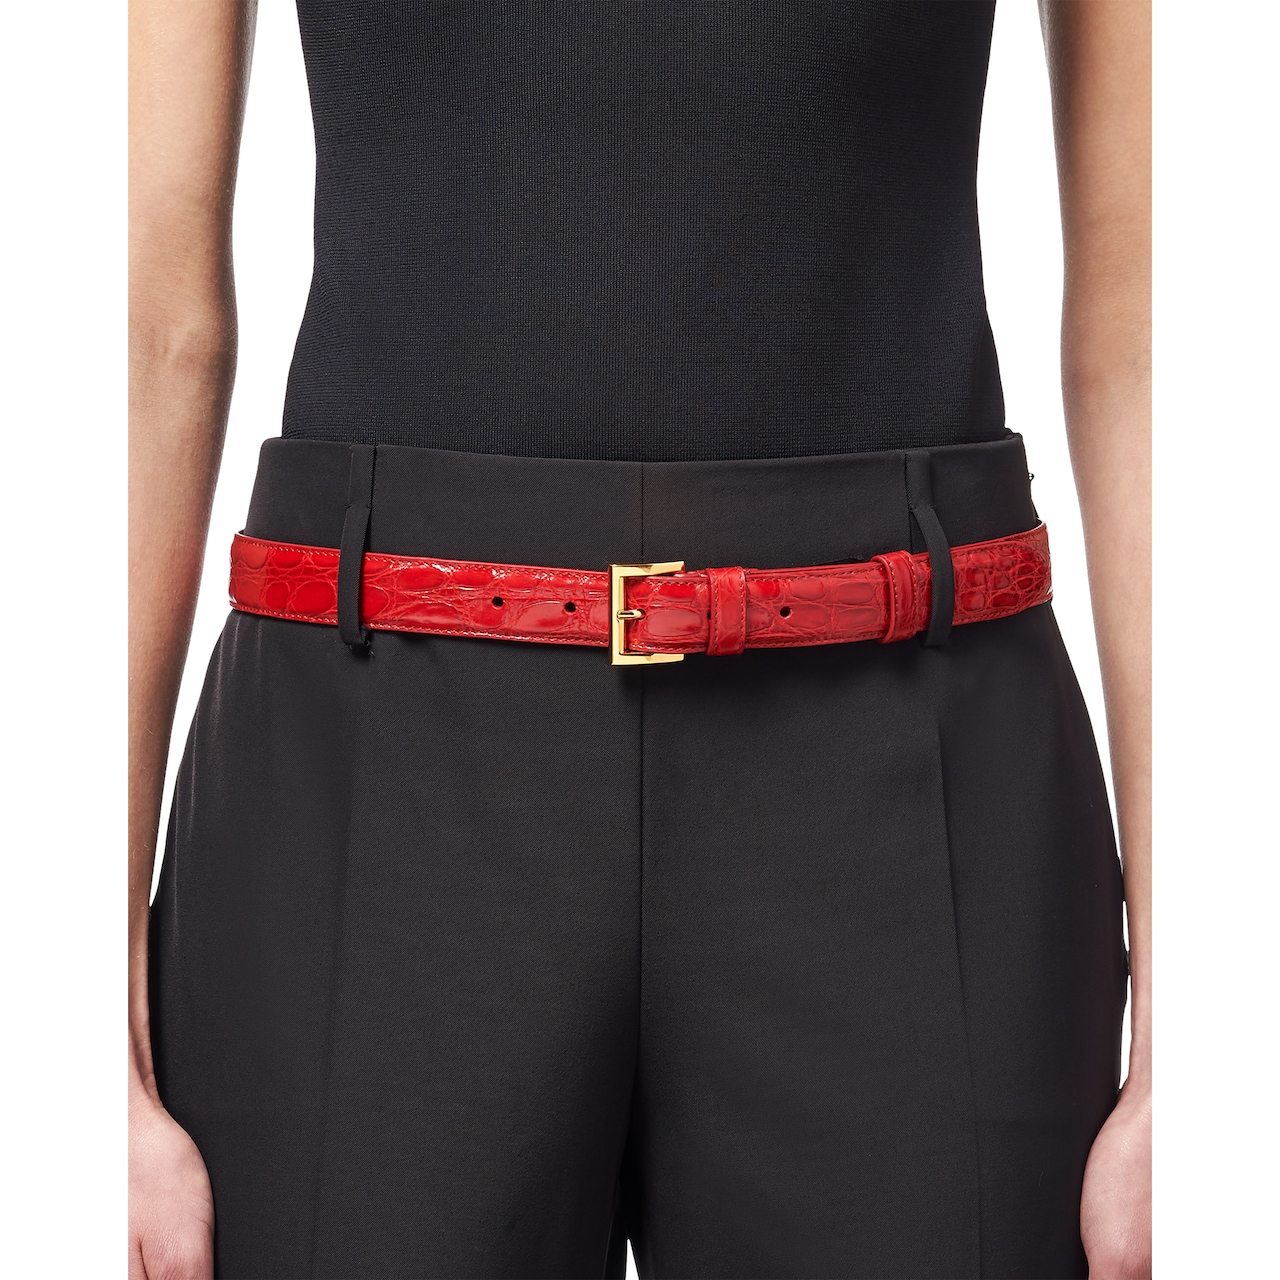 Prada Crocodile leather belt 2